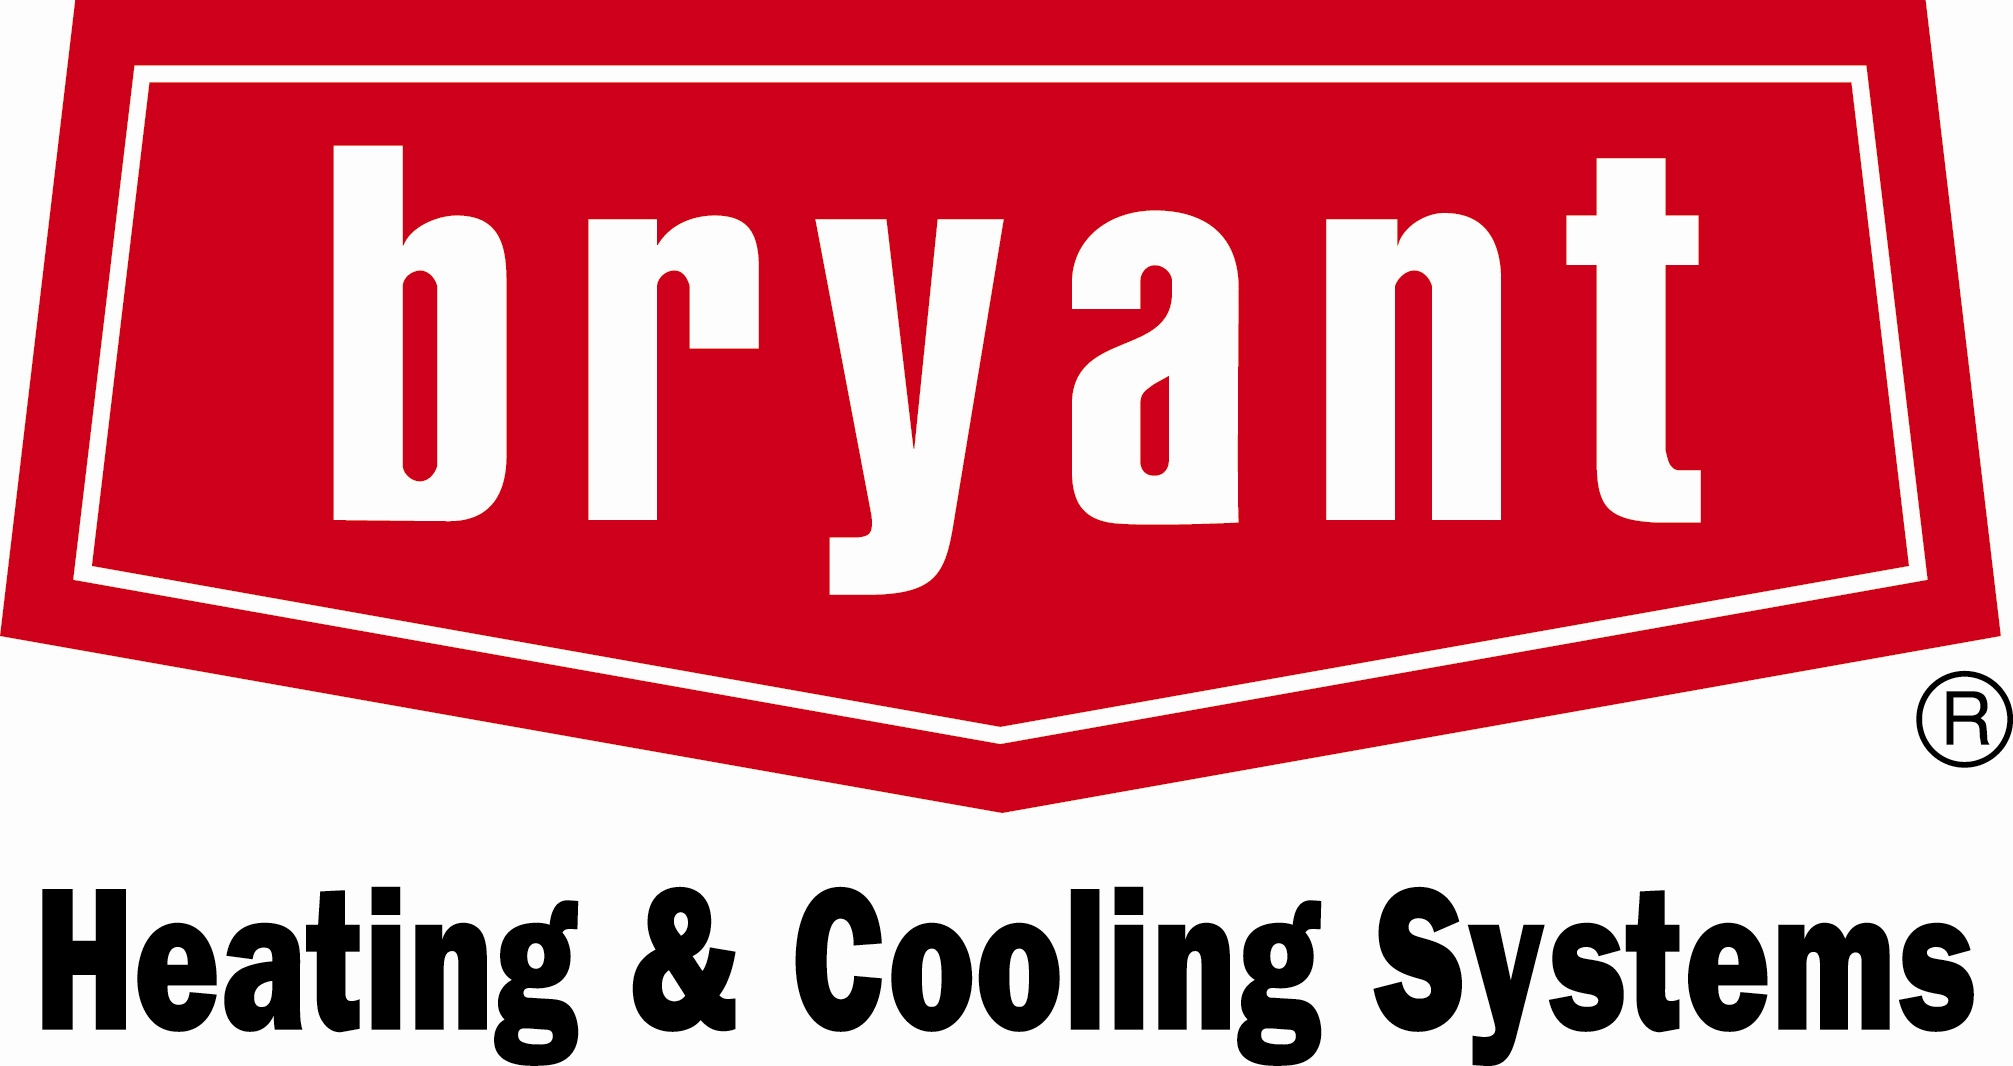 Benefits Of Installing A Bryant Hvac System Outer Banks Nc